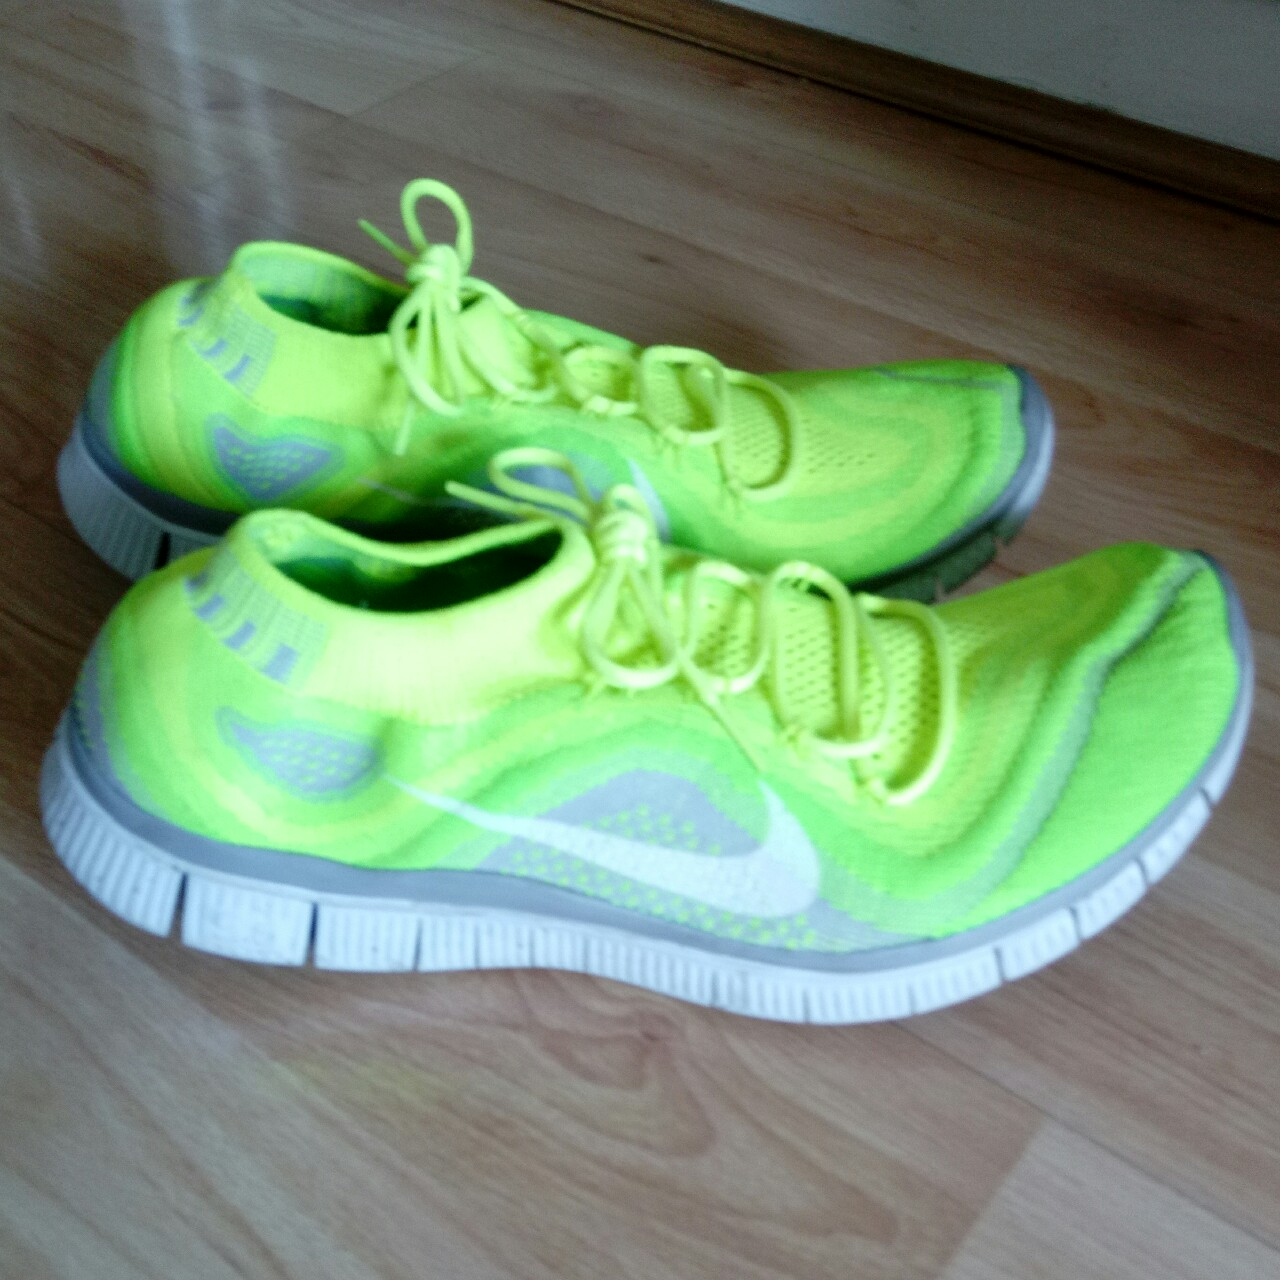 cheap for discount 4e058 04cb9 Nike Free Run 5.0 • Size 10 • RRP £130 My Price £35... - Depop